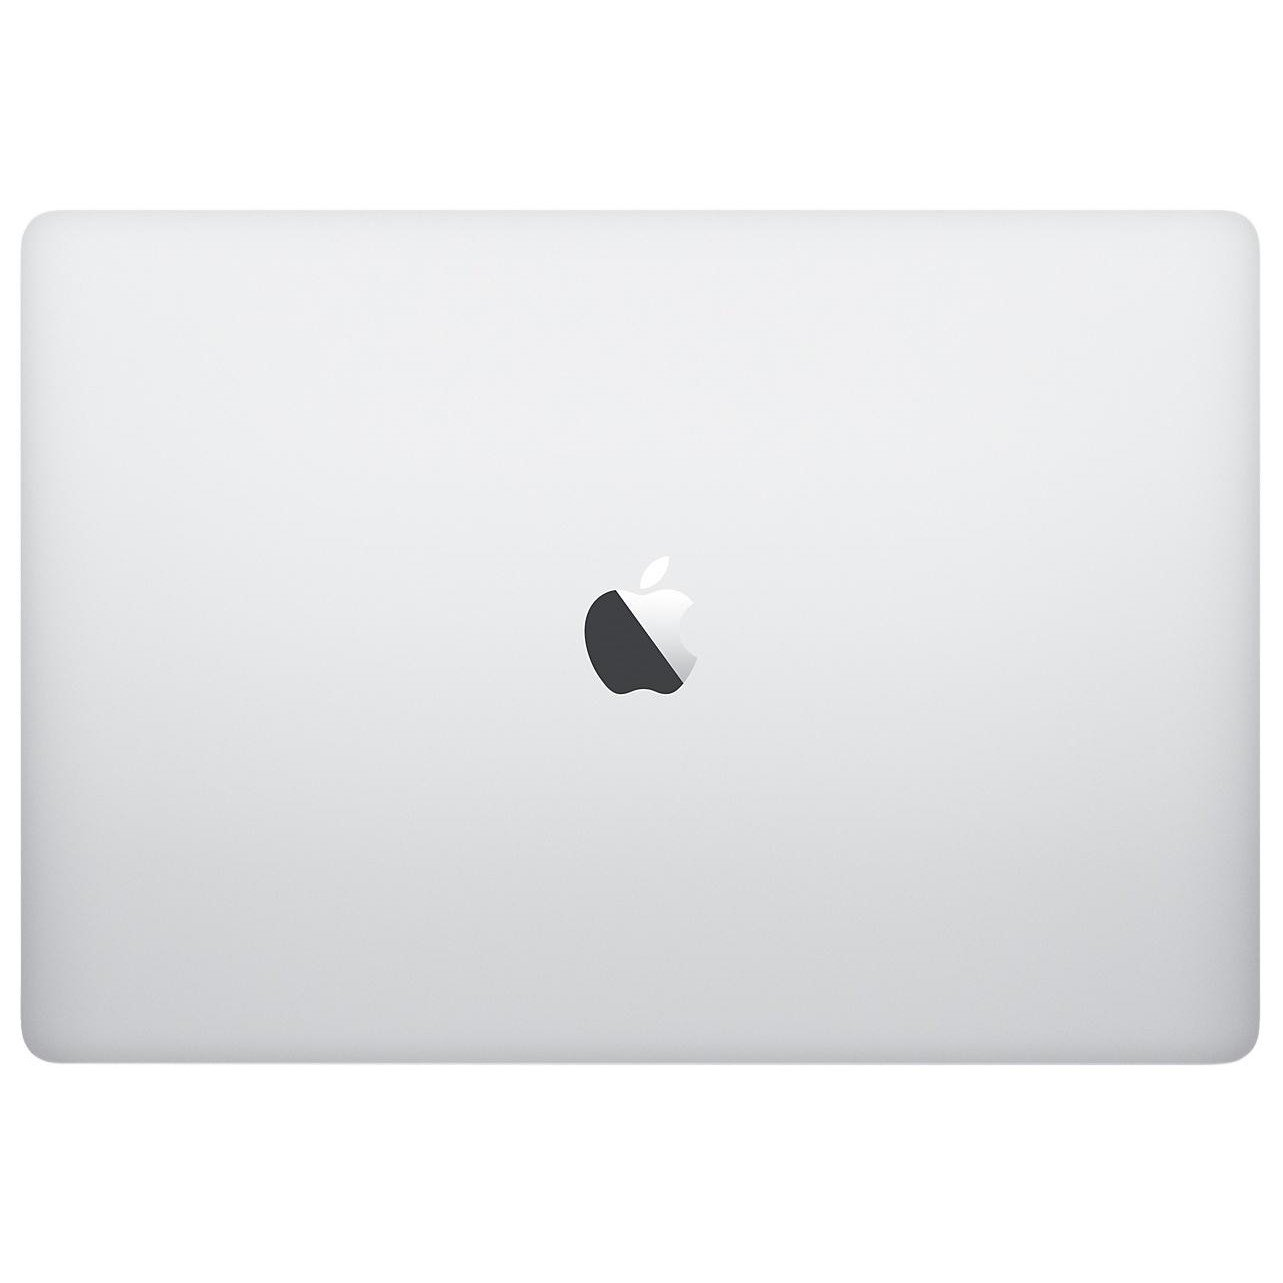 "Apple MacBook Pro 15"" Touch Bar 512 GB SSD Silver (MPTV2), картинка 4"